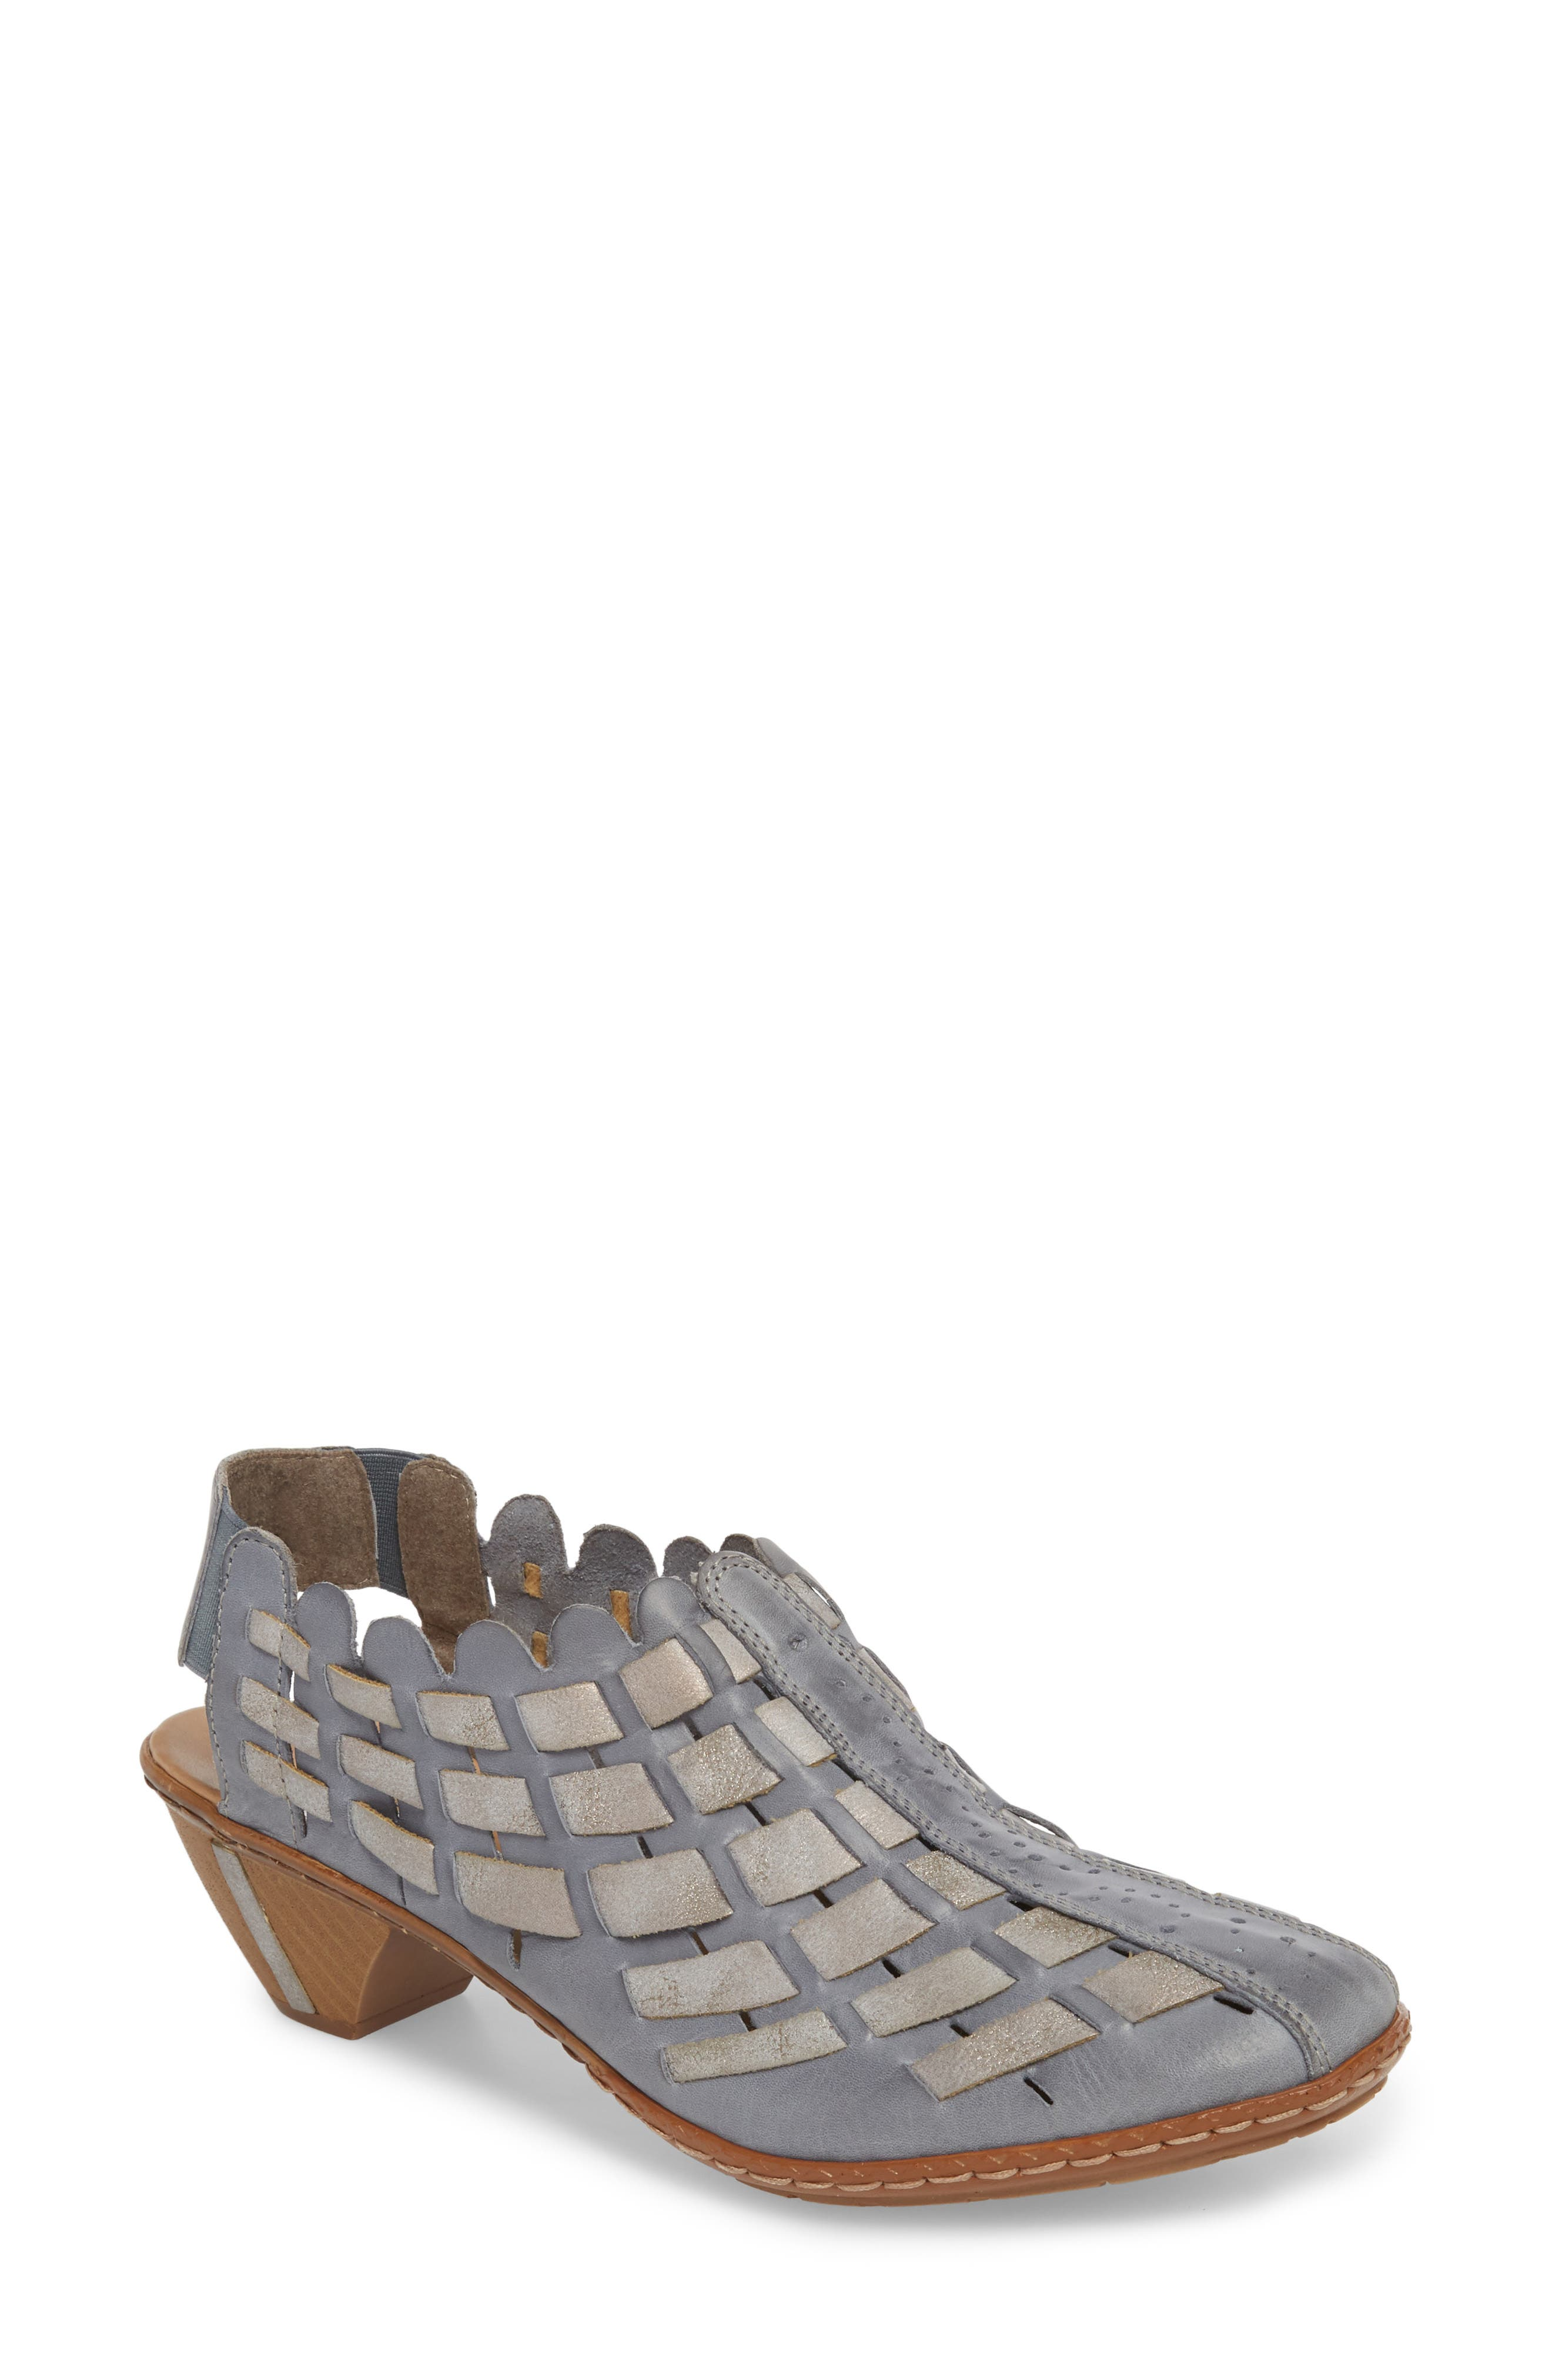 'Sina' Woven Bootie,                         Main,                         color, Azur Grey Leather